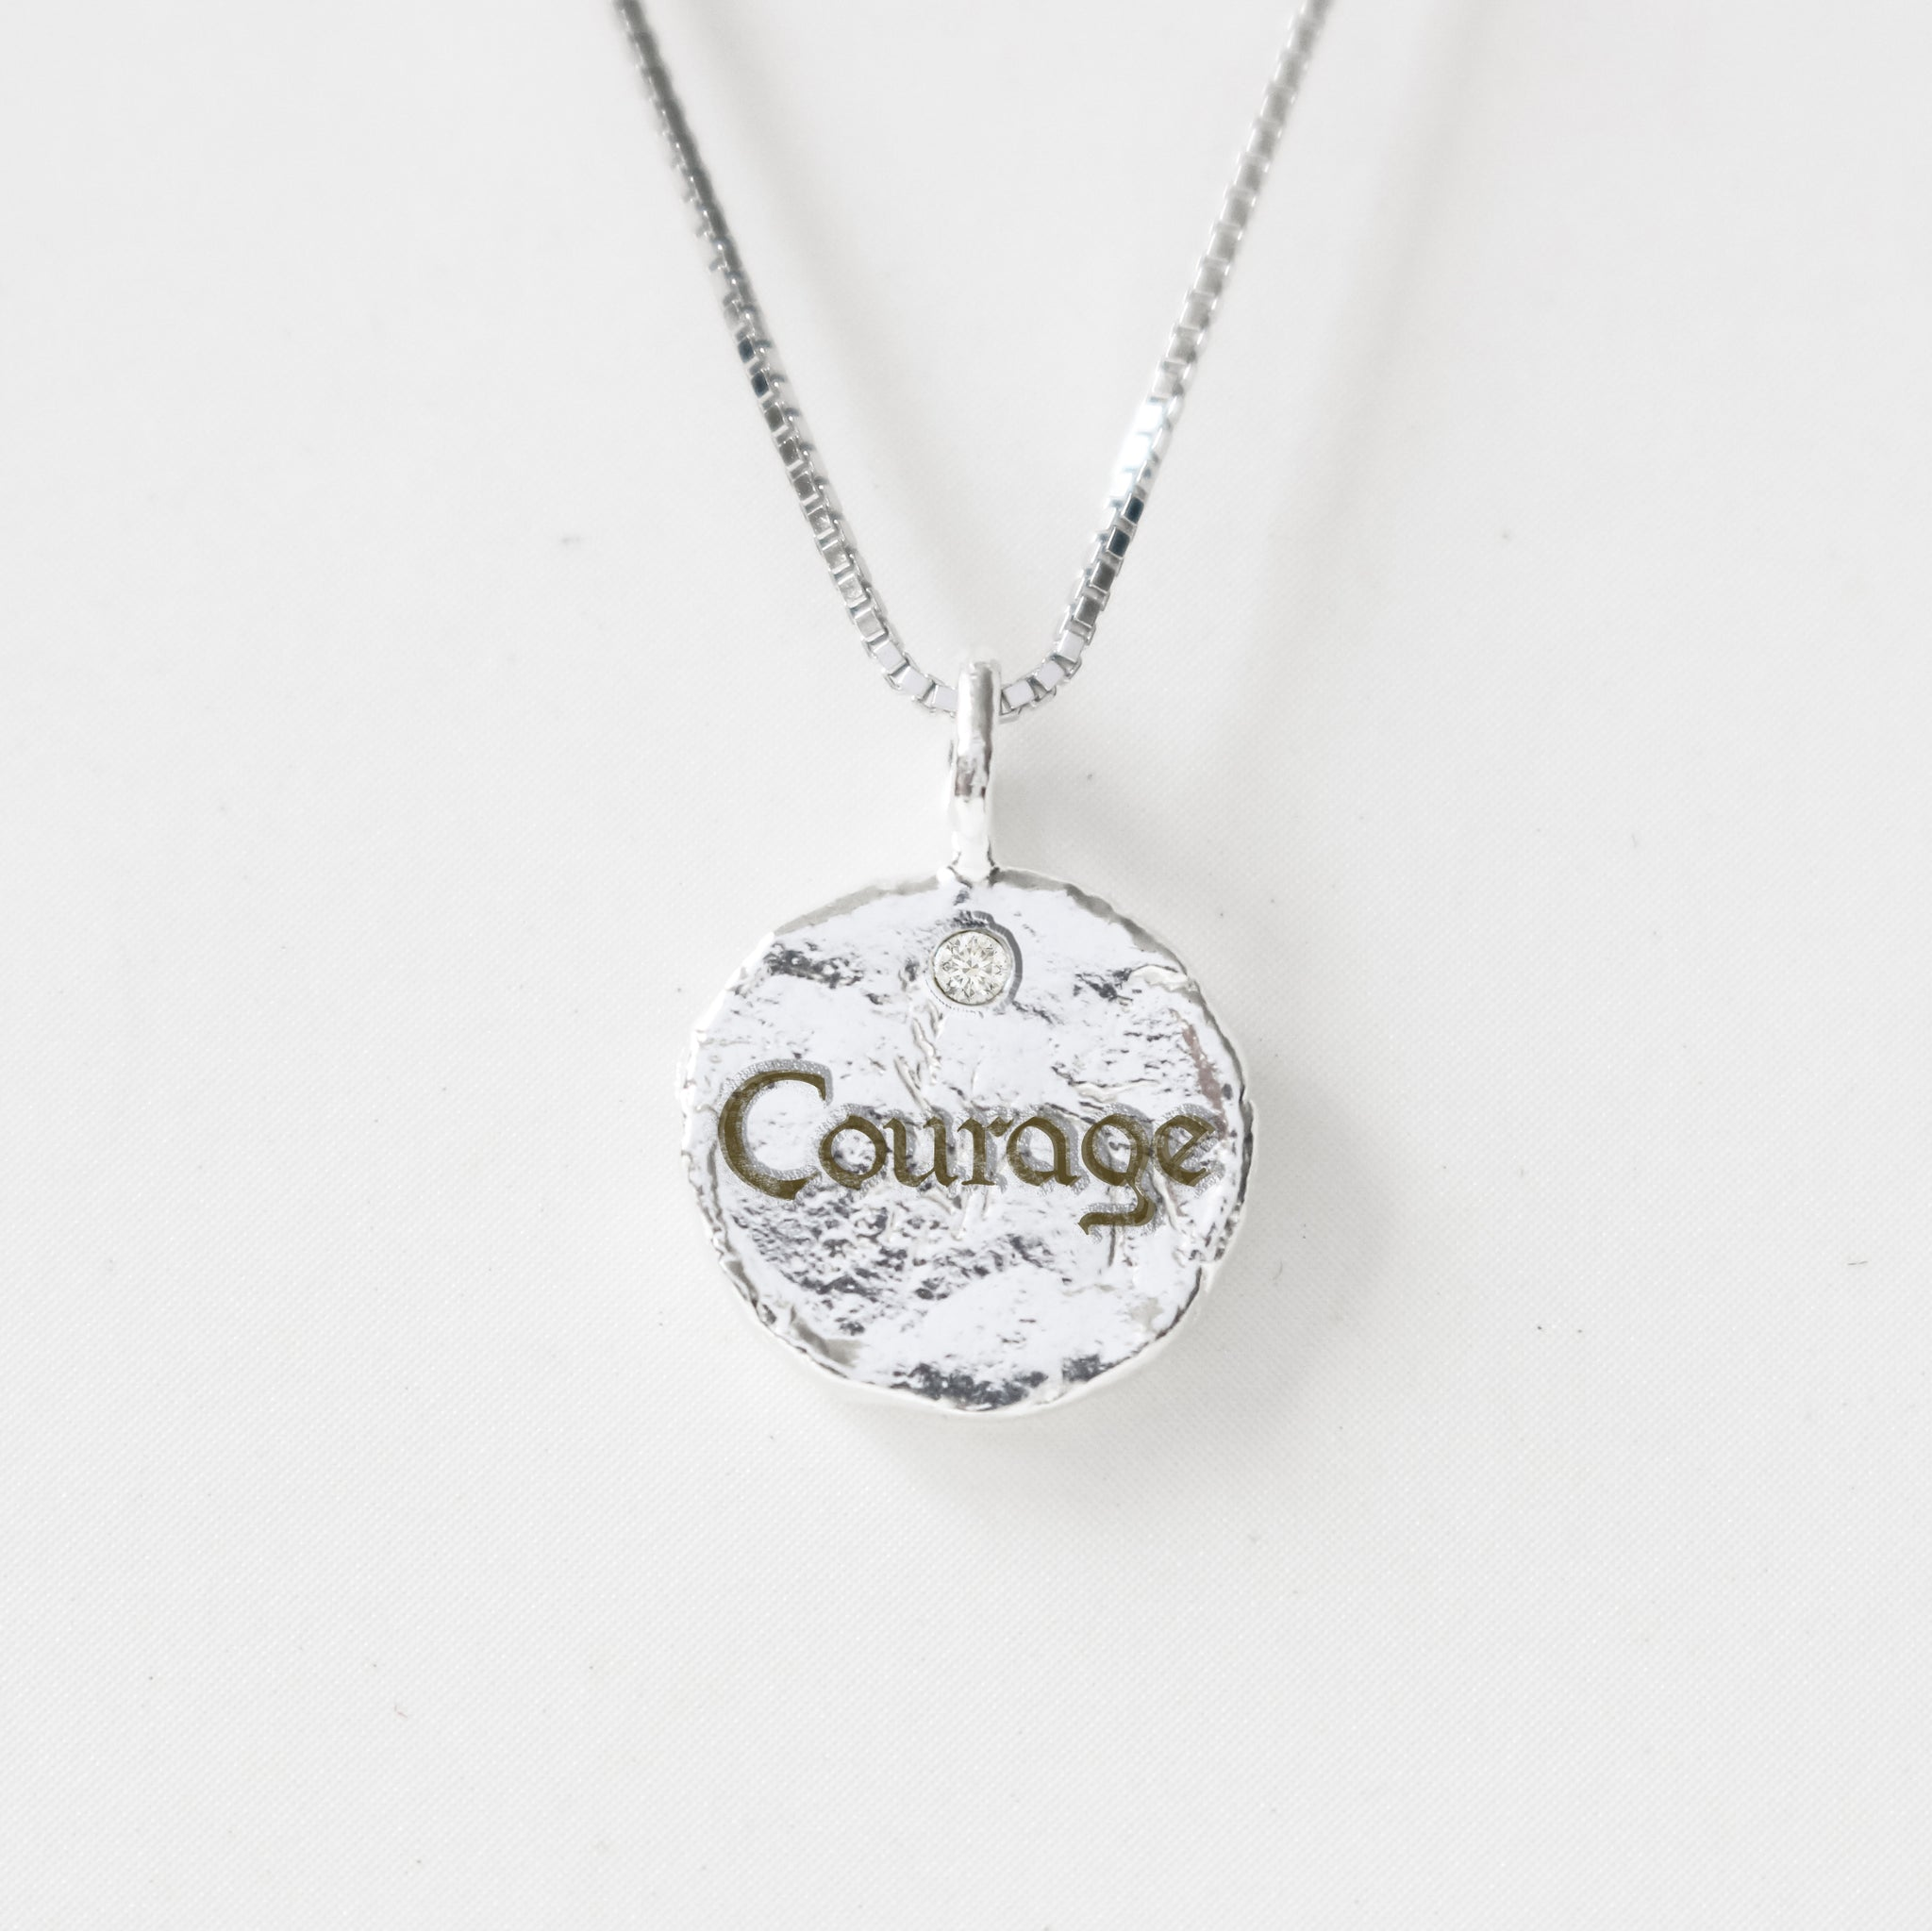 Courage - Empowerment Diamond Silver Necklace